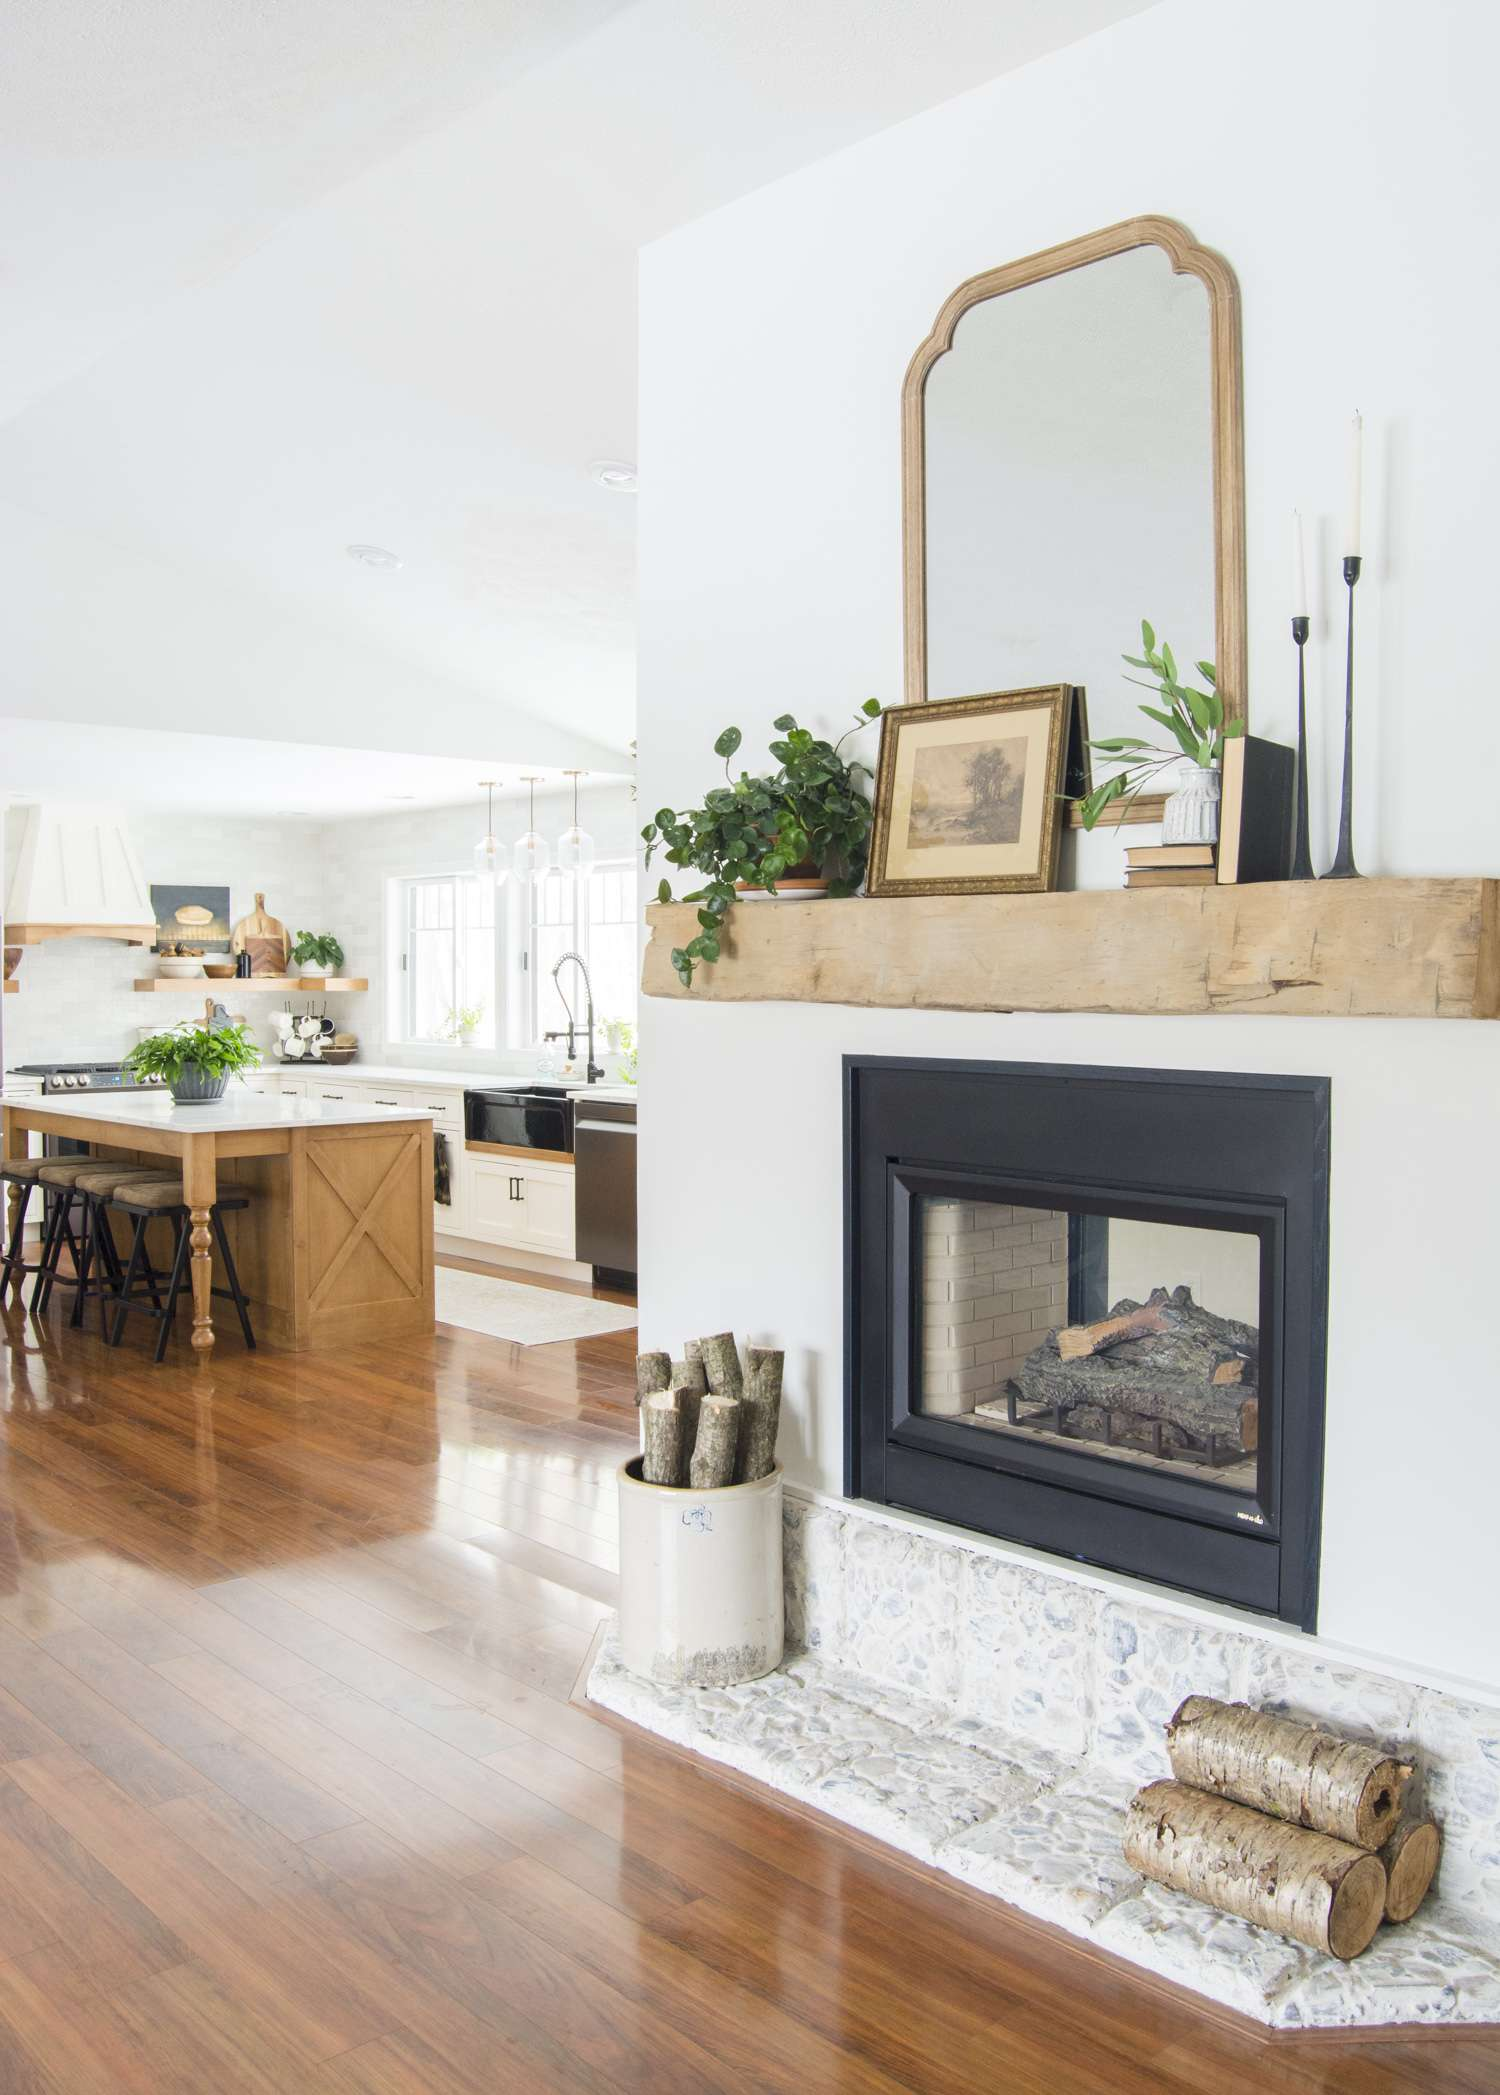 Barn beam mantel styled with modern farmhouse mantel decor.